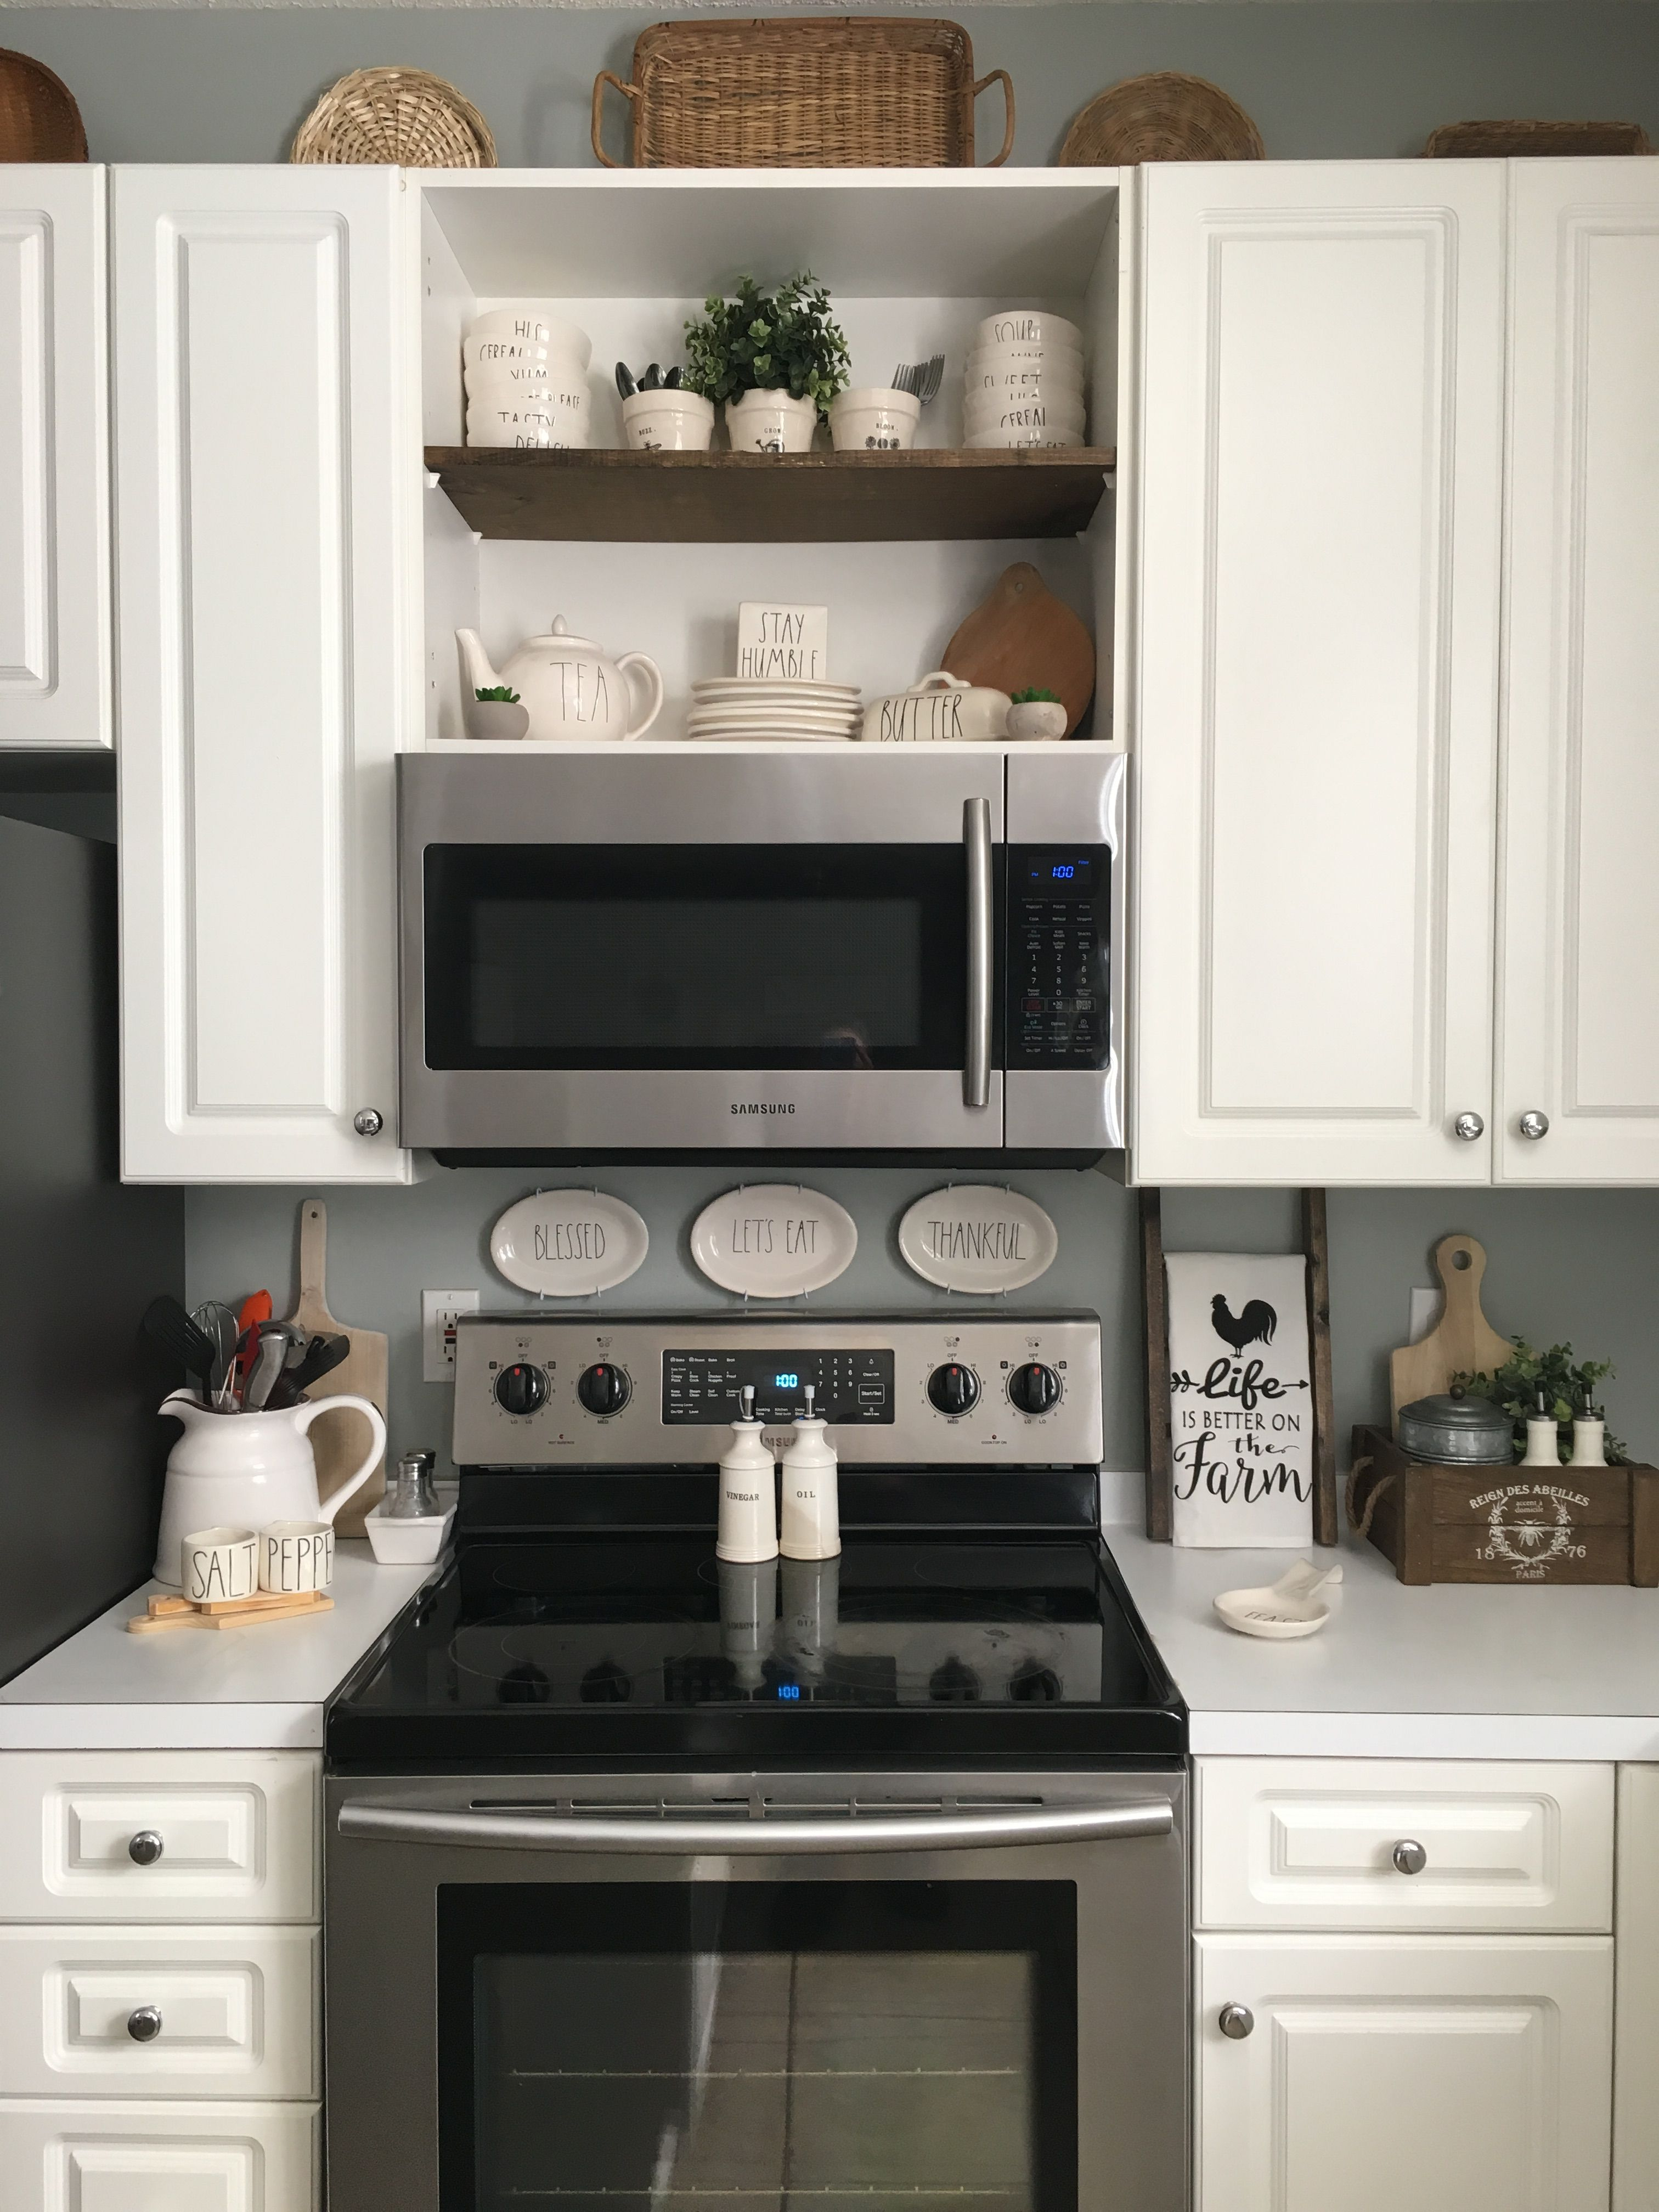 Open Display Shelves Above Microwave | Kitchen Ideas In 2019